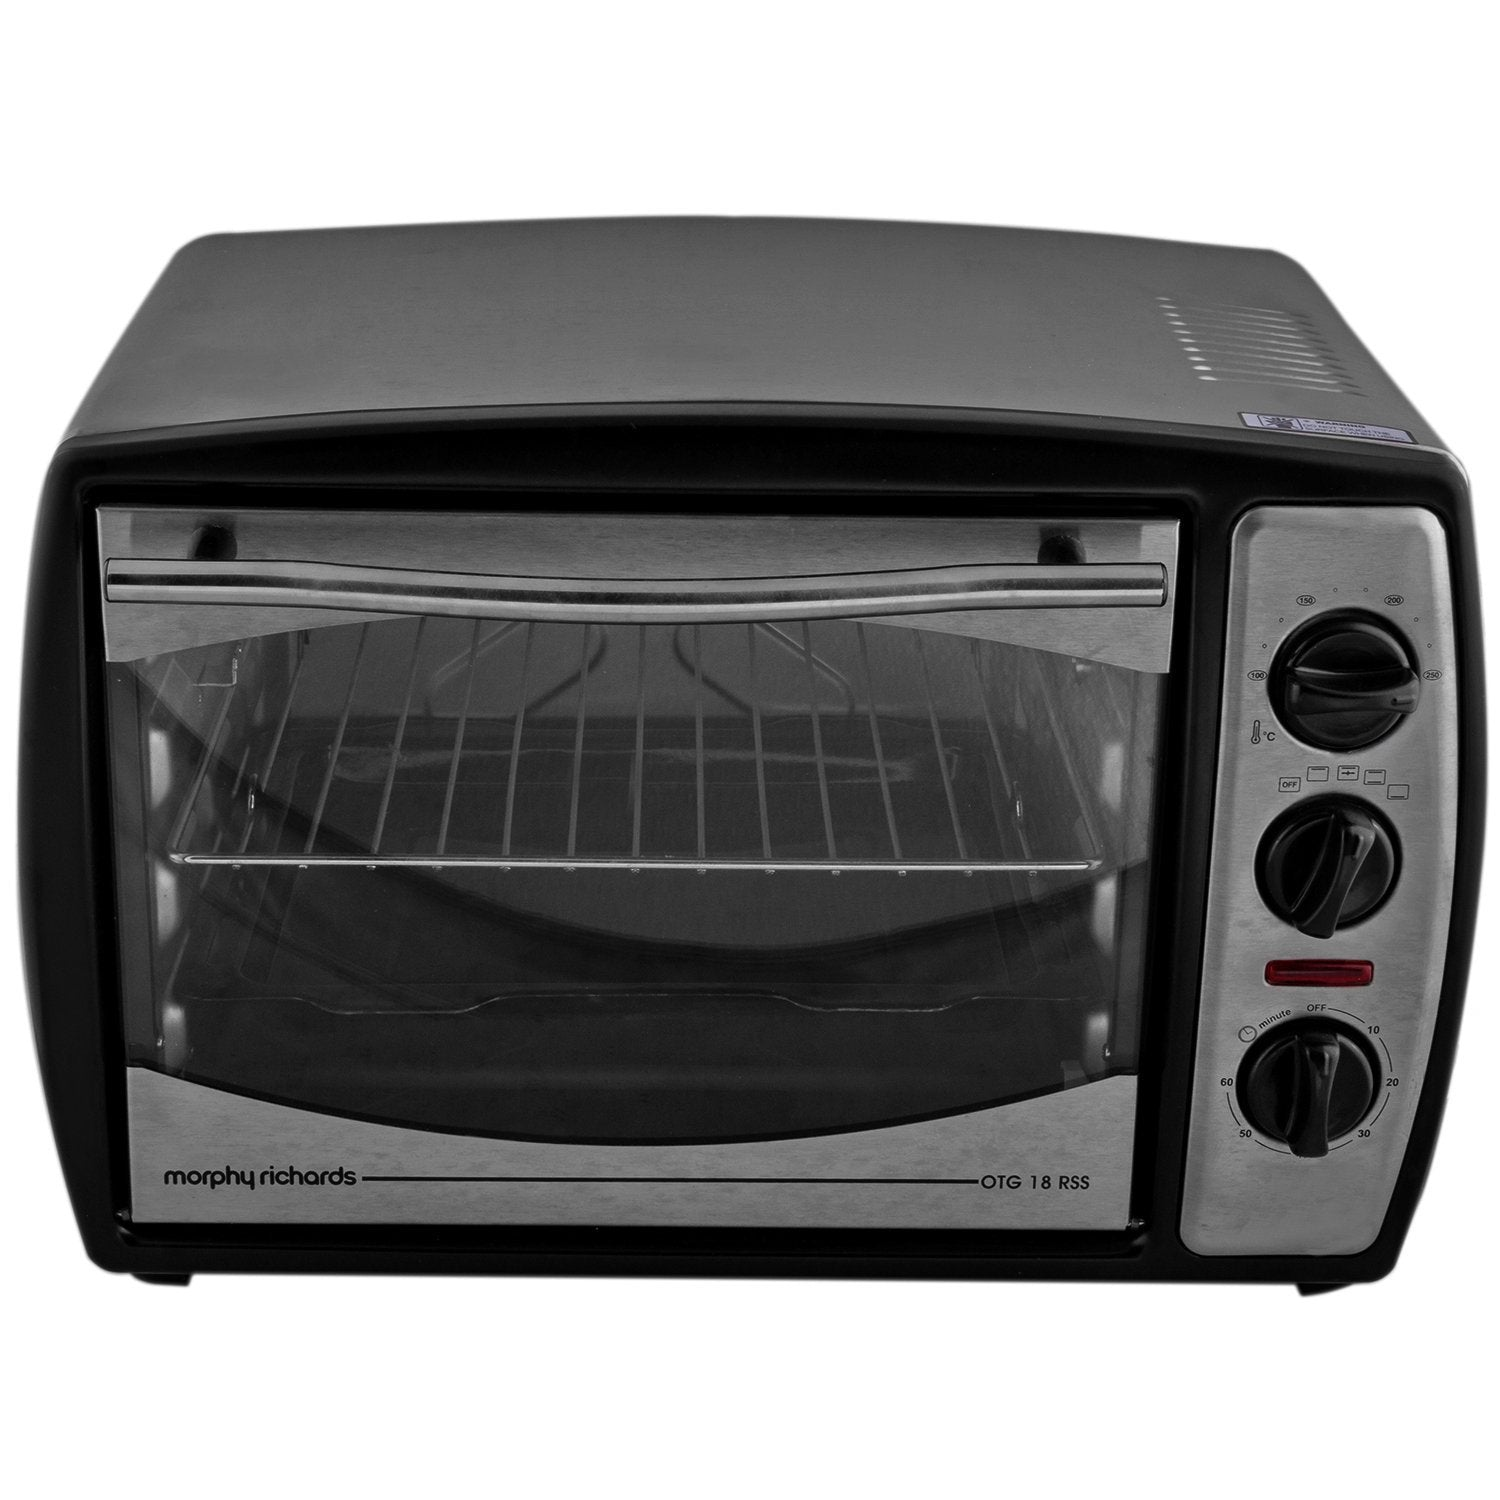 for not usa asia large volt sharp oven europe toaster africa